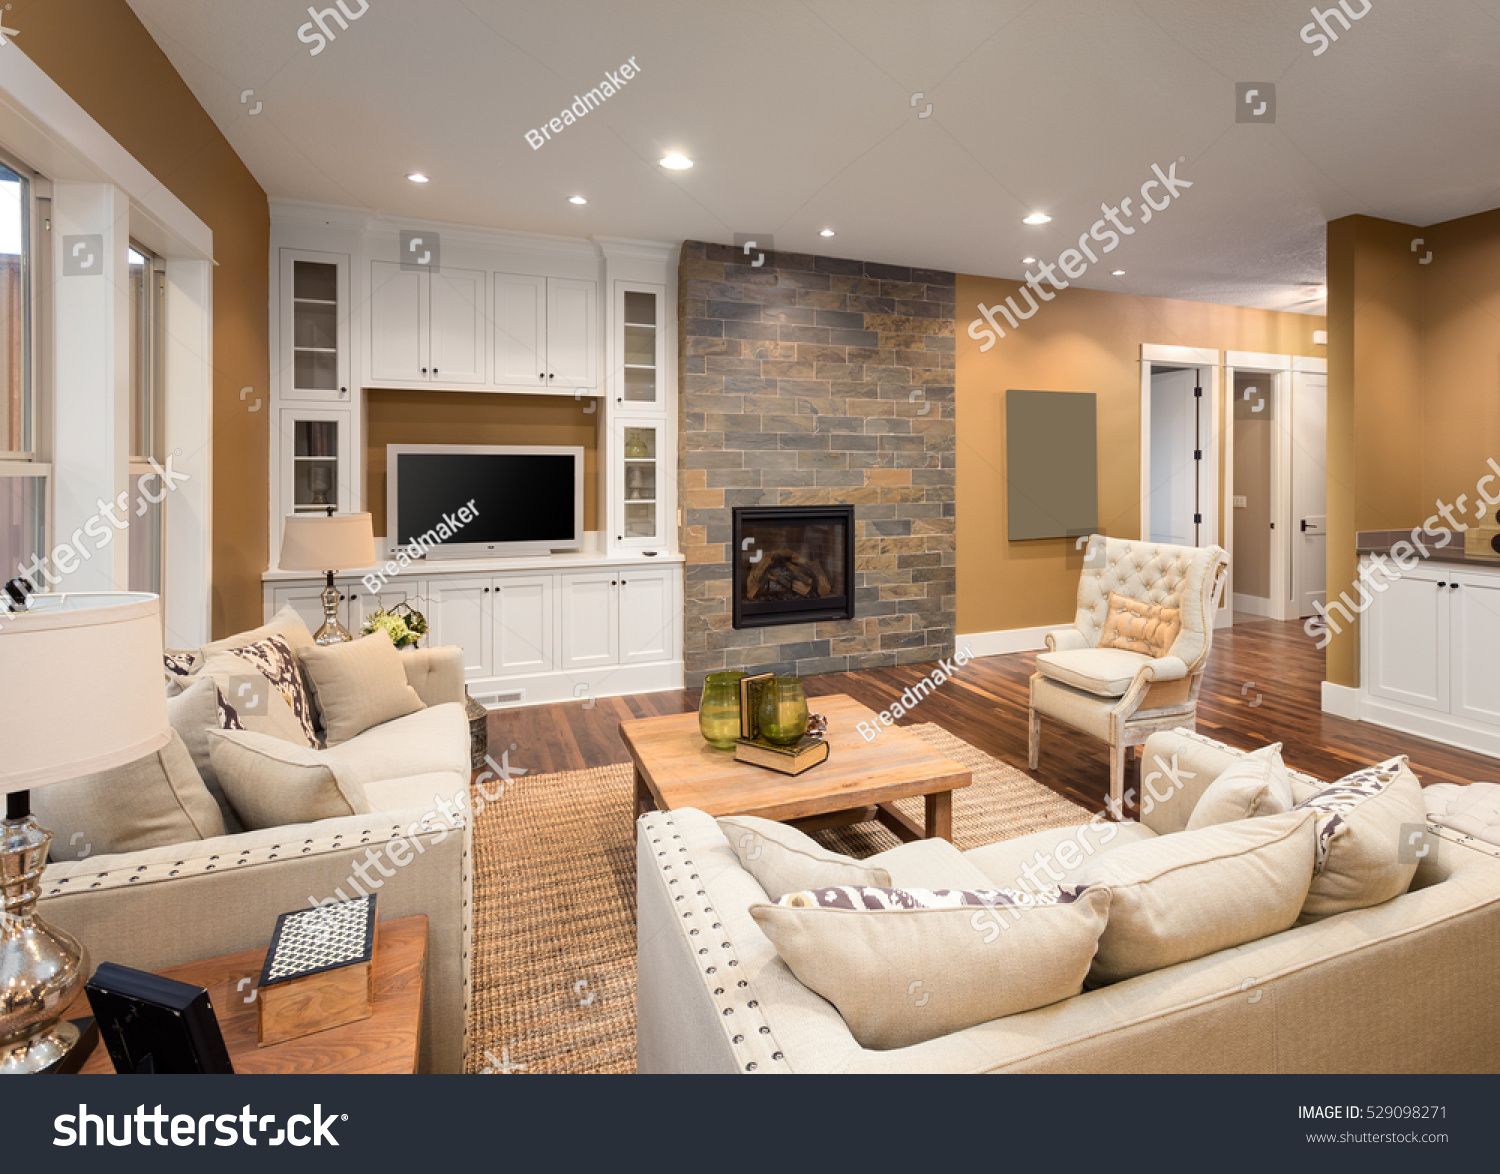 pictures of furnished living rooms room paint color ideas beautiful fireplace television stock photo with and in new luxury home hardwood floors